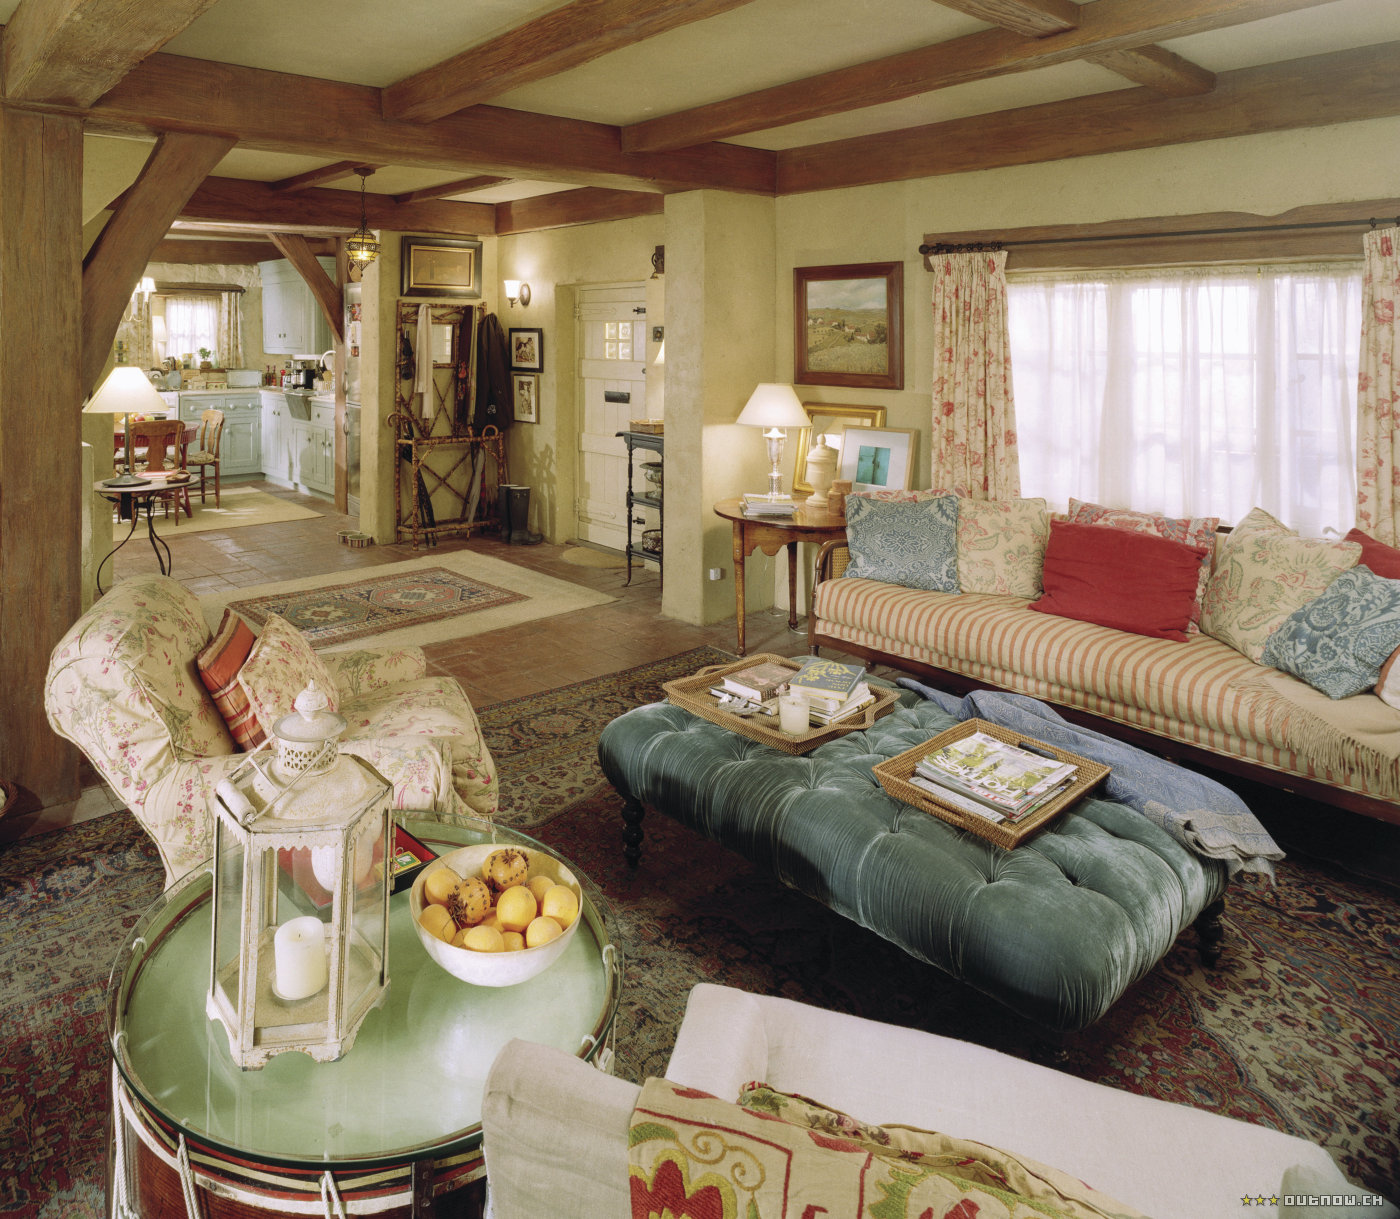 Modern country style the holiday houses living rooms for Modern country style